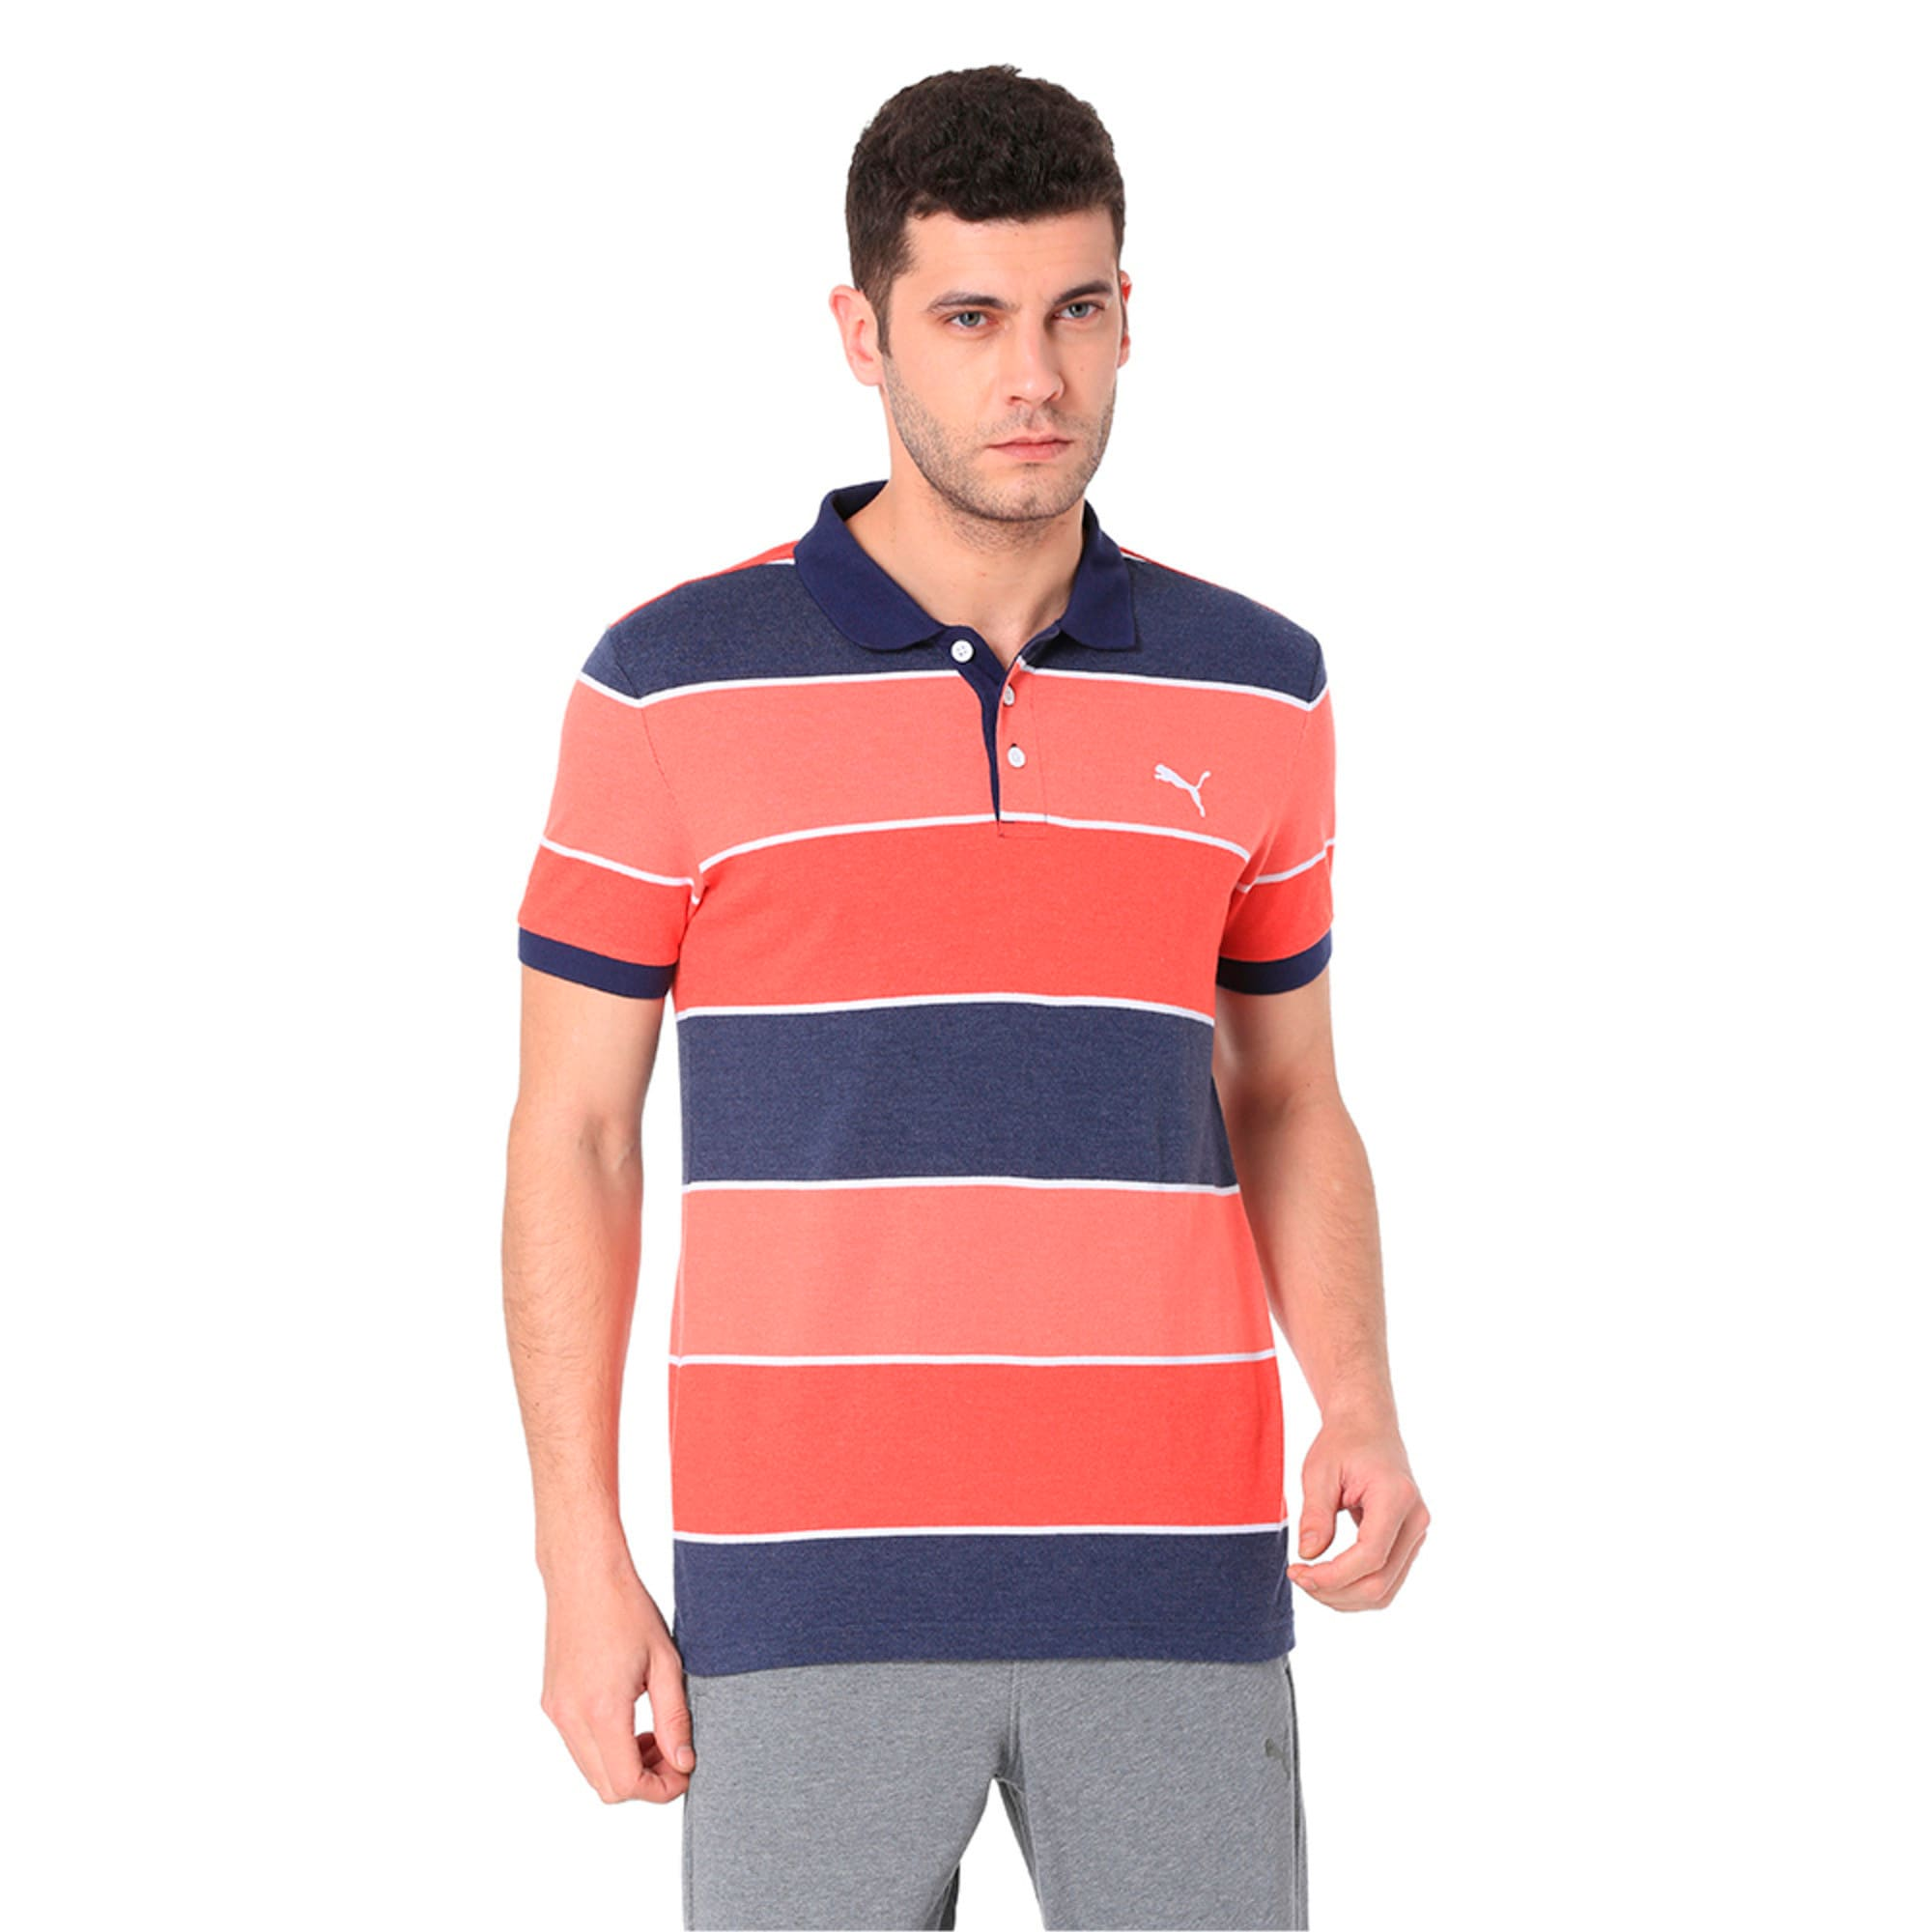 Thumbnail 7 of COLOR BLOCKED POLO M, Flame Scarlet Heather, medium-IND